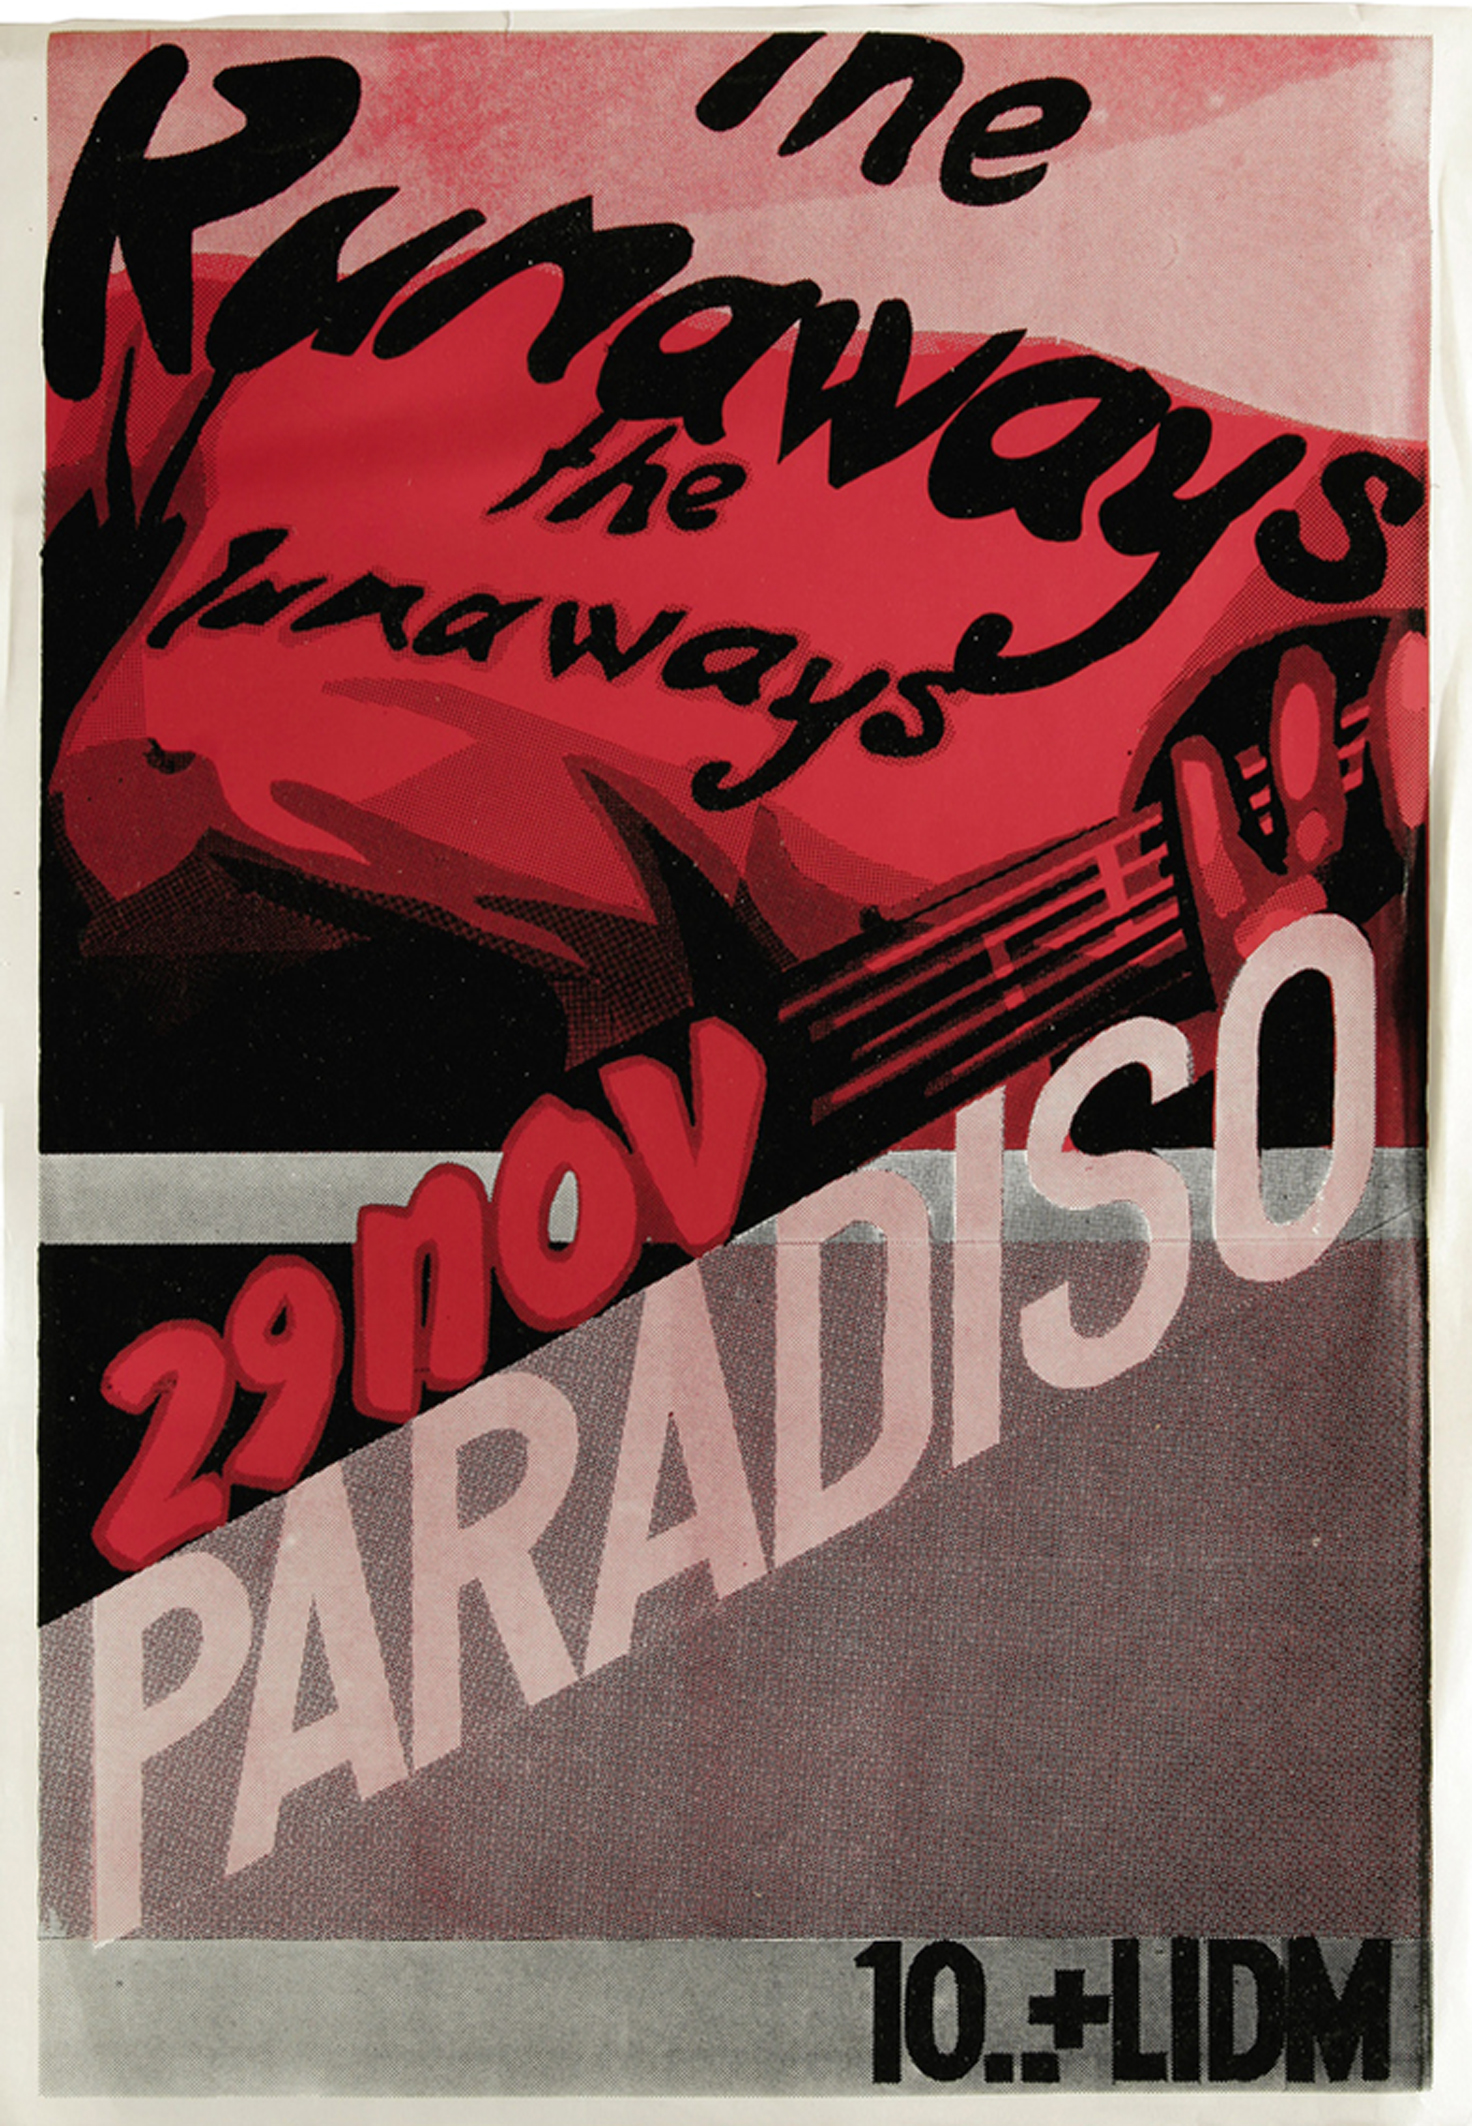 Runaways Paradiso Concert Poster (1977)